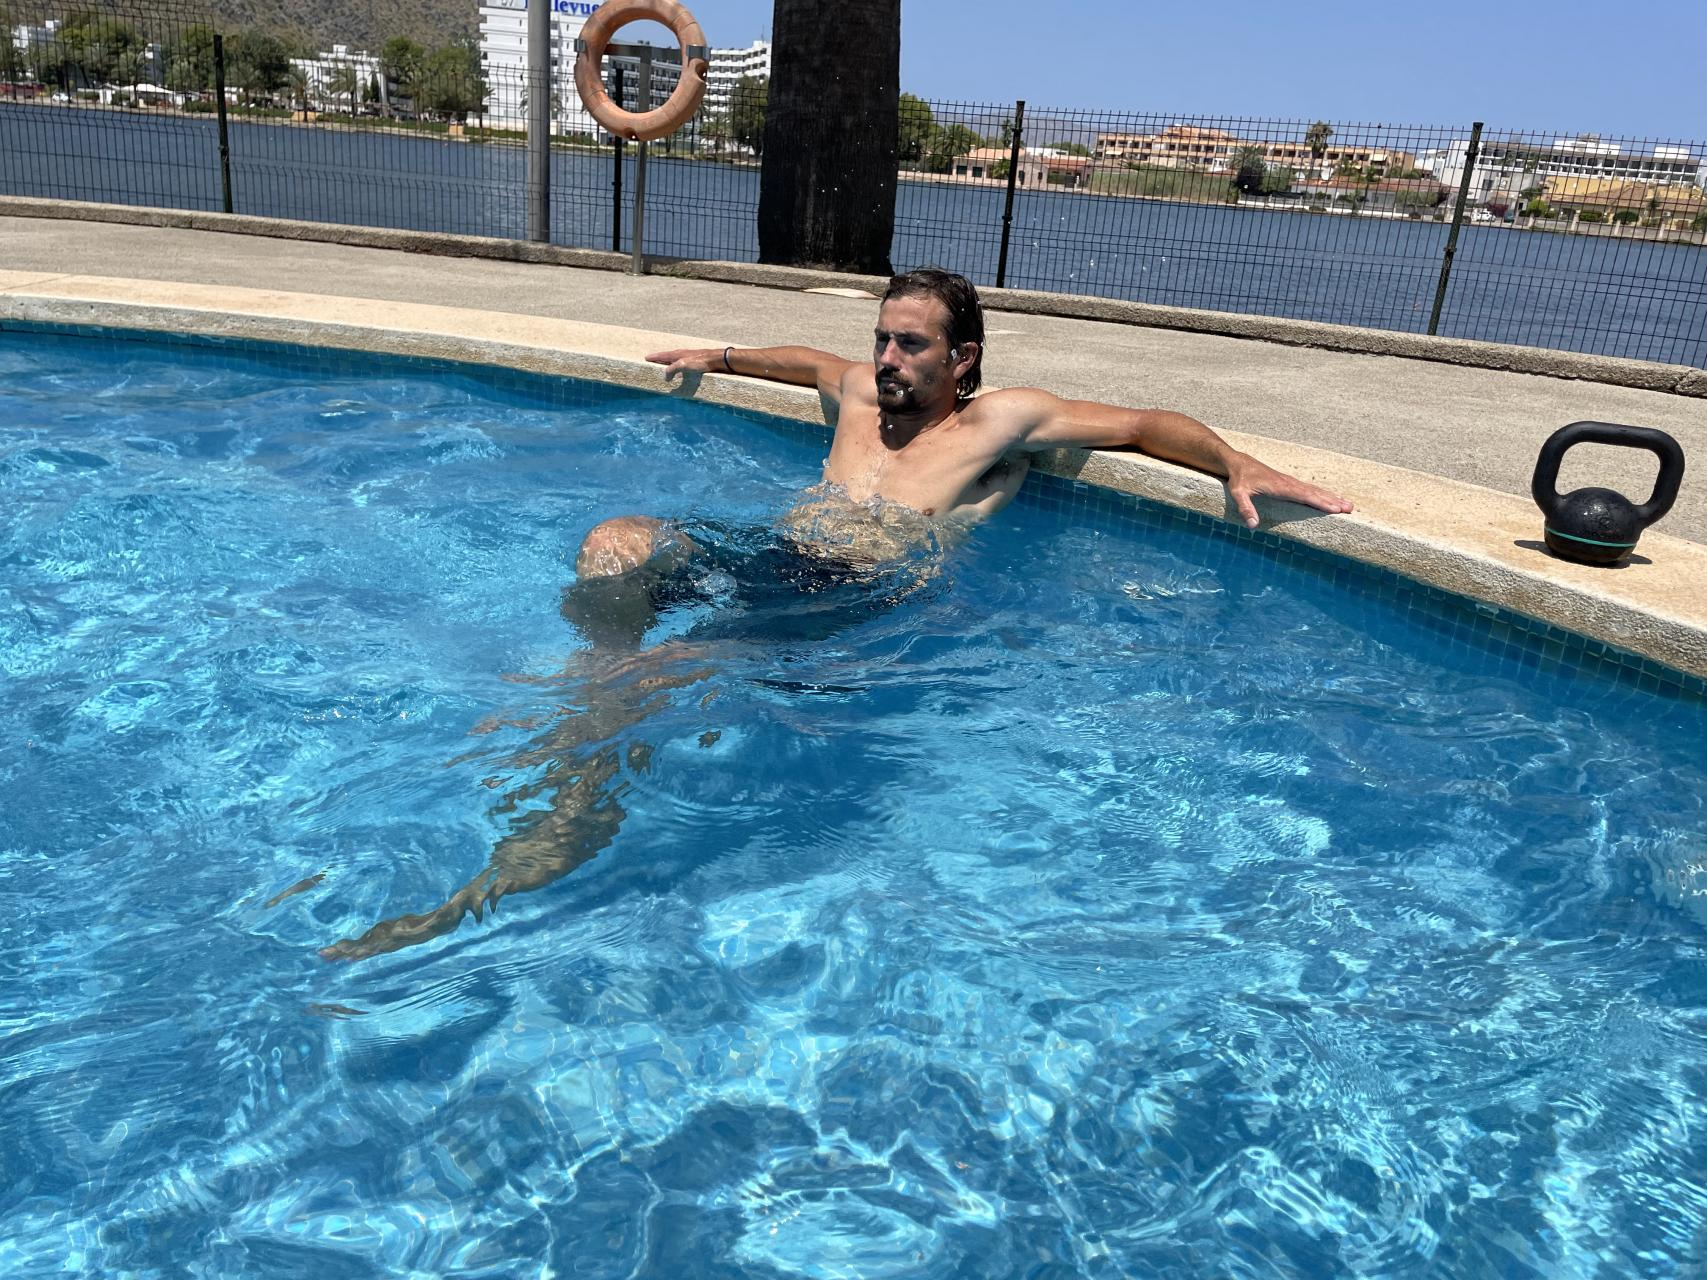 Water Cycling. If your calves feel overworked, hold on to the edge of the pool as above and cycle those legs.